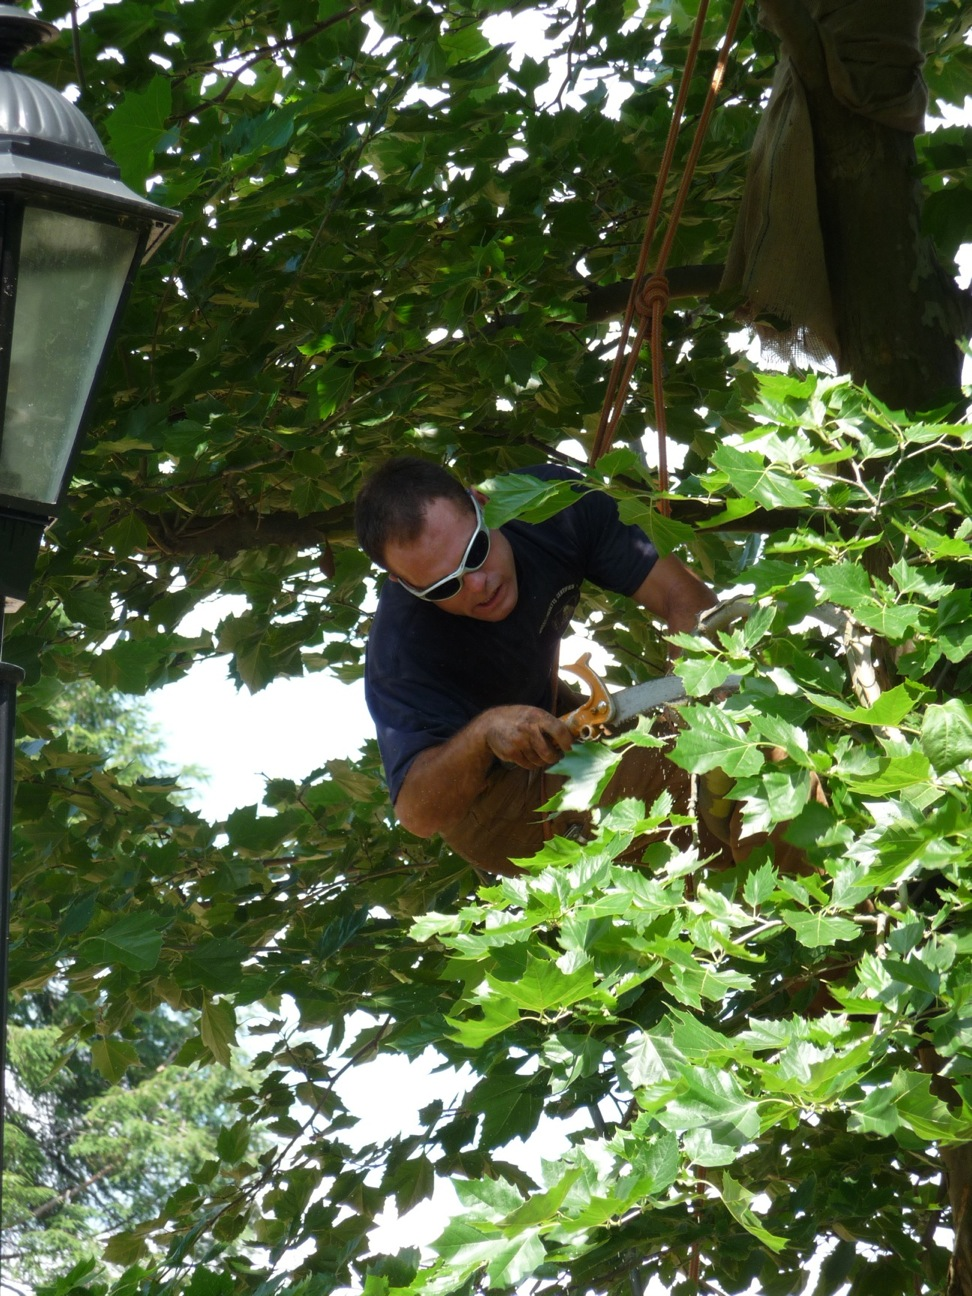 Minor pruning to fix a lamppost-branch conflict.